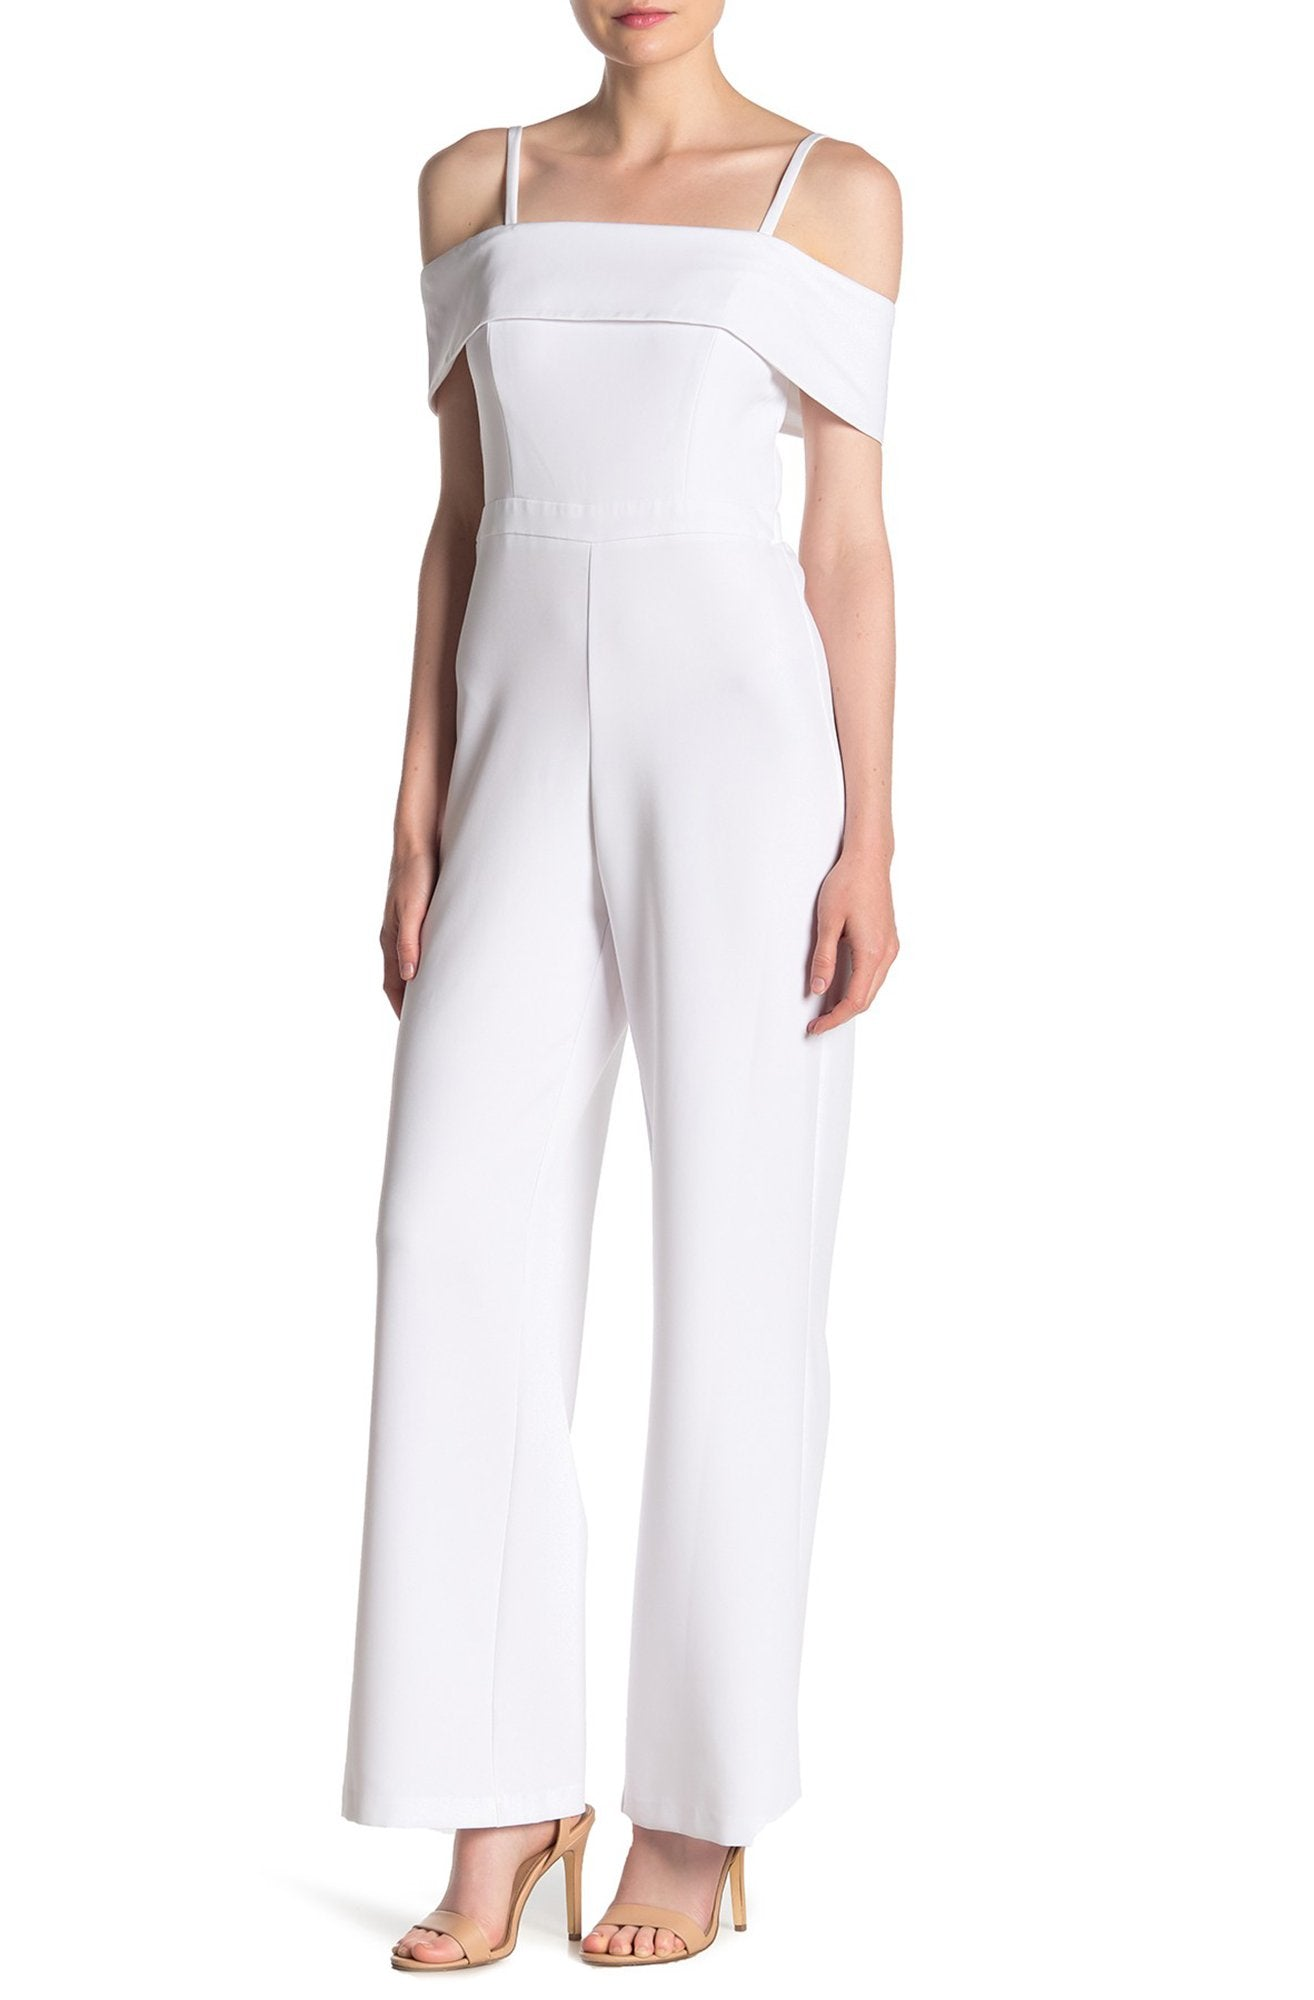 Laundry - HP01K57G Off-Shoulder Popover Crepe Jumpsuit In White